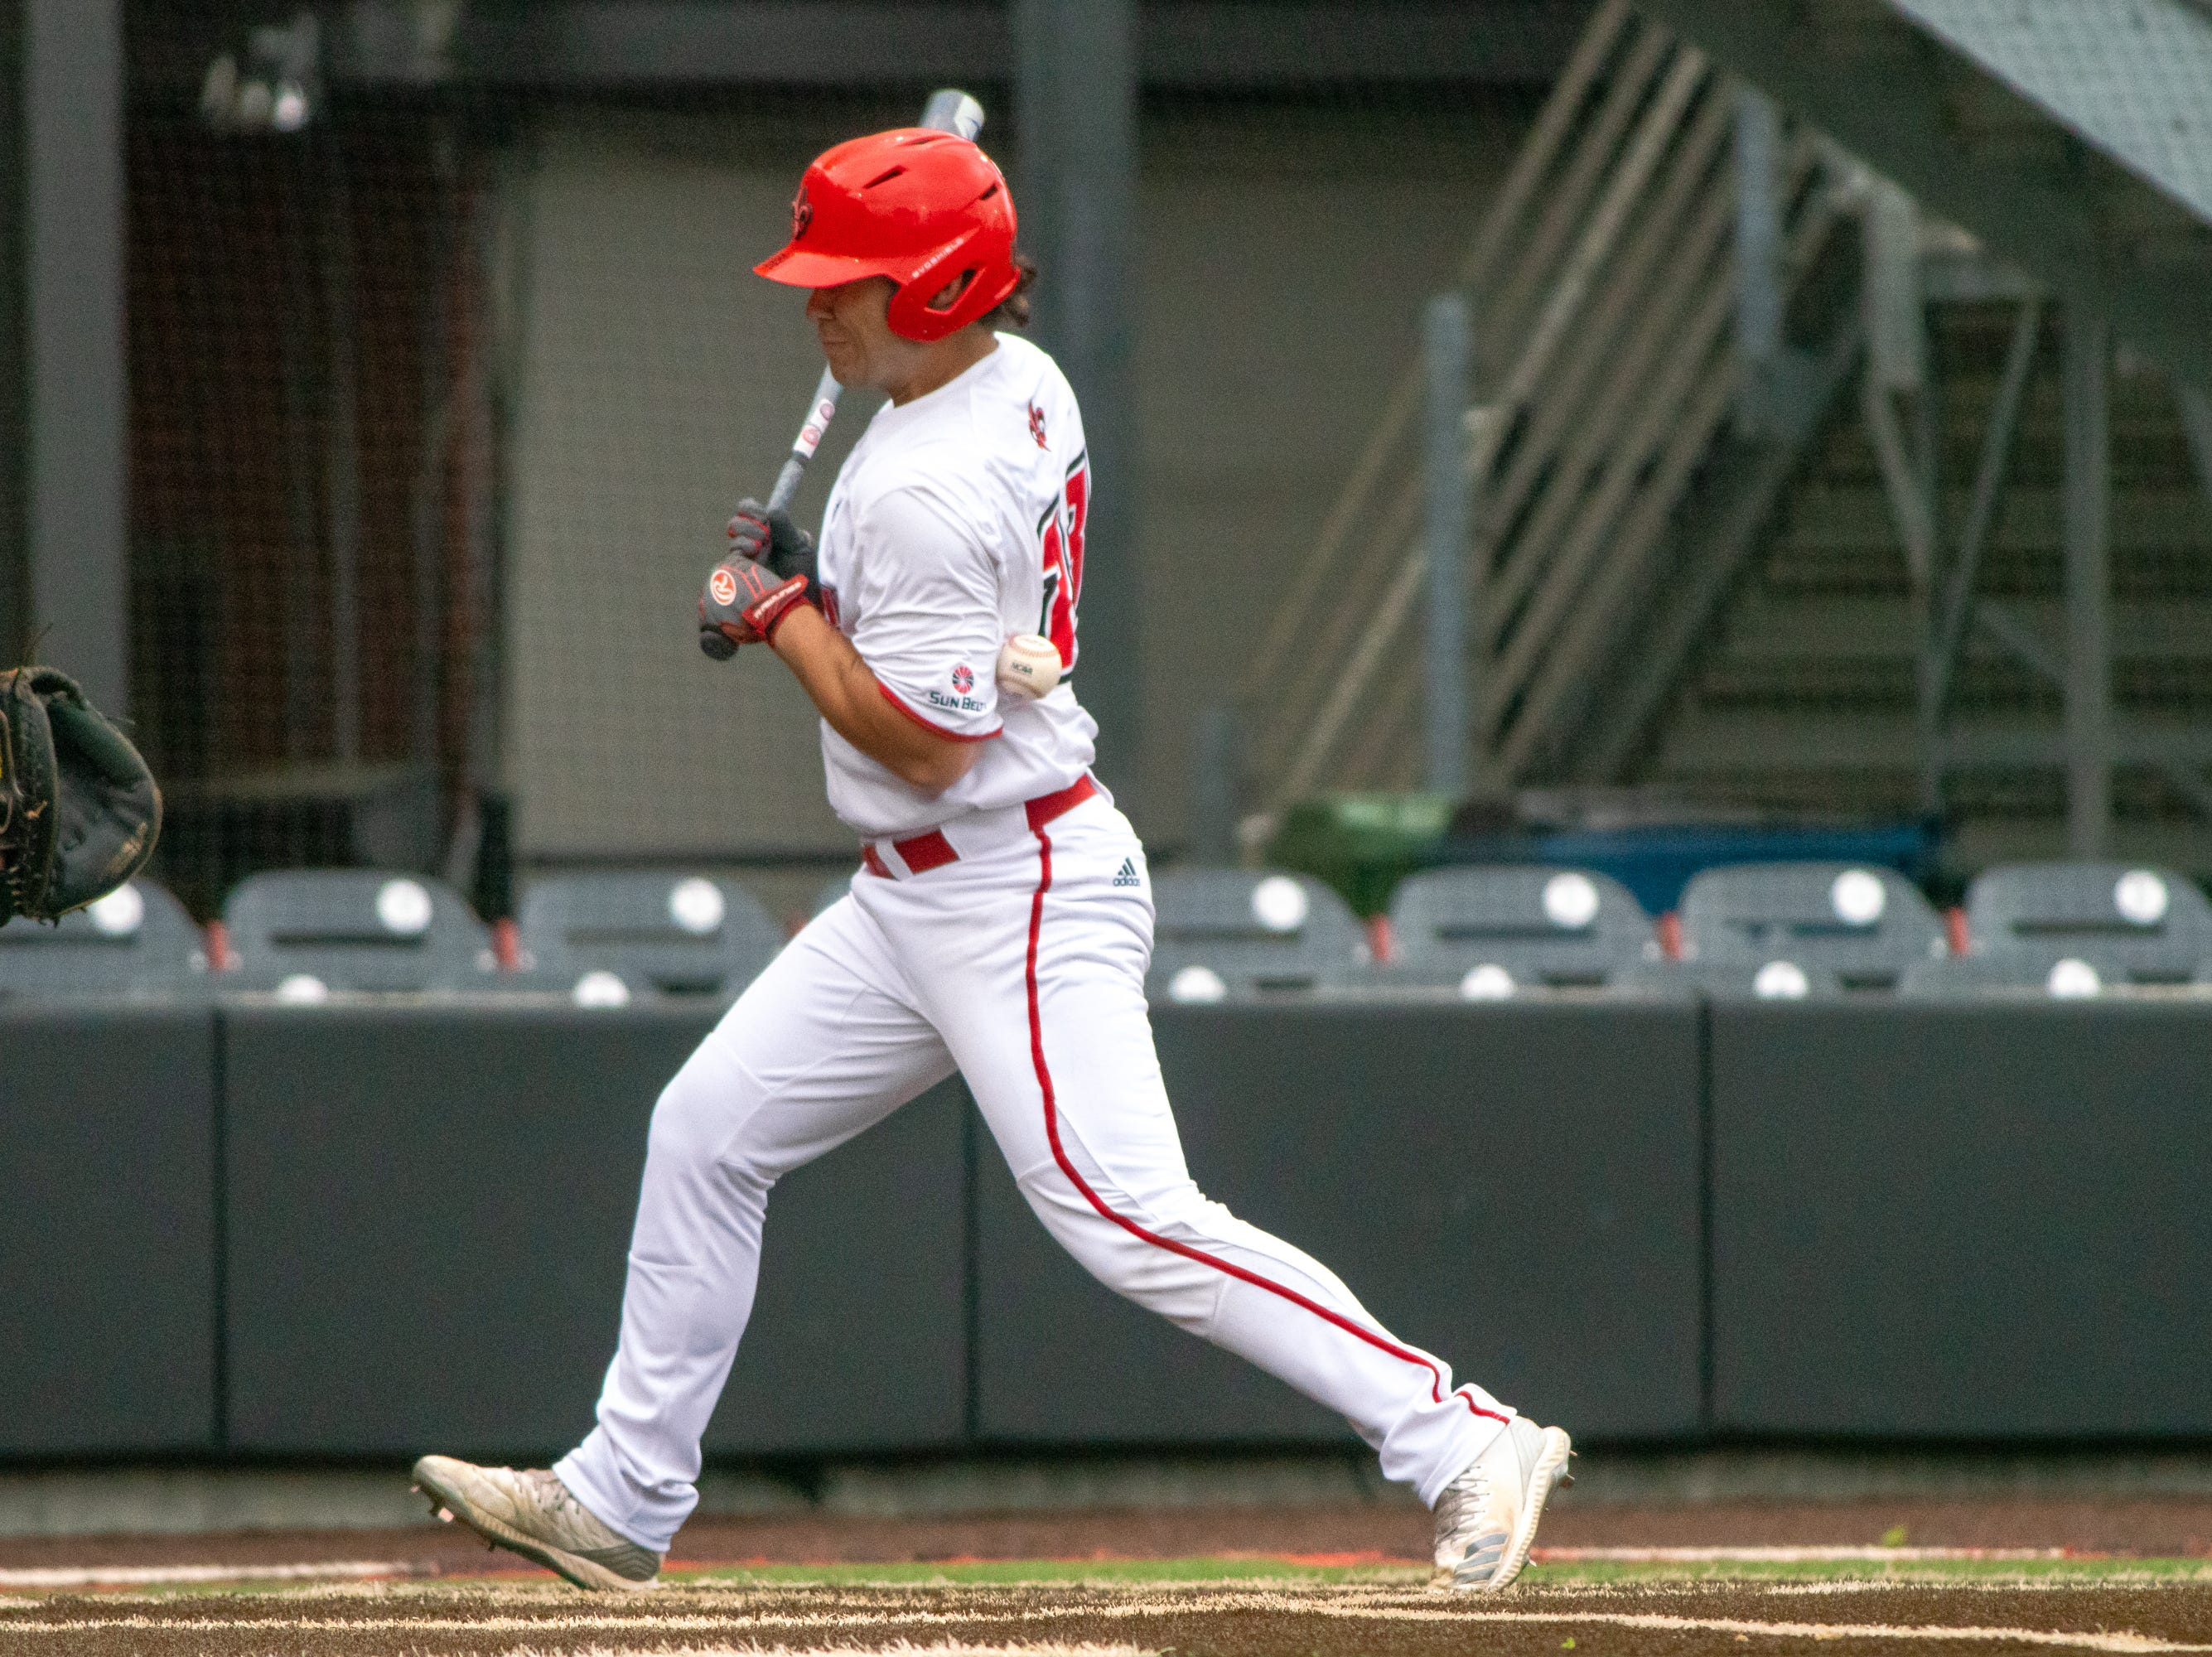 """UL's Handsome Monica gets hit by the pitch as the Ragin' Cajuns take on the South Alabama Jaguars at M.L. """"Tigue"""" Moore Field on Saturday, April 13, 2019."""